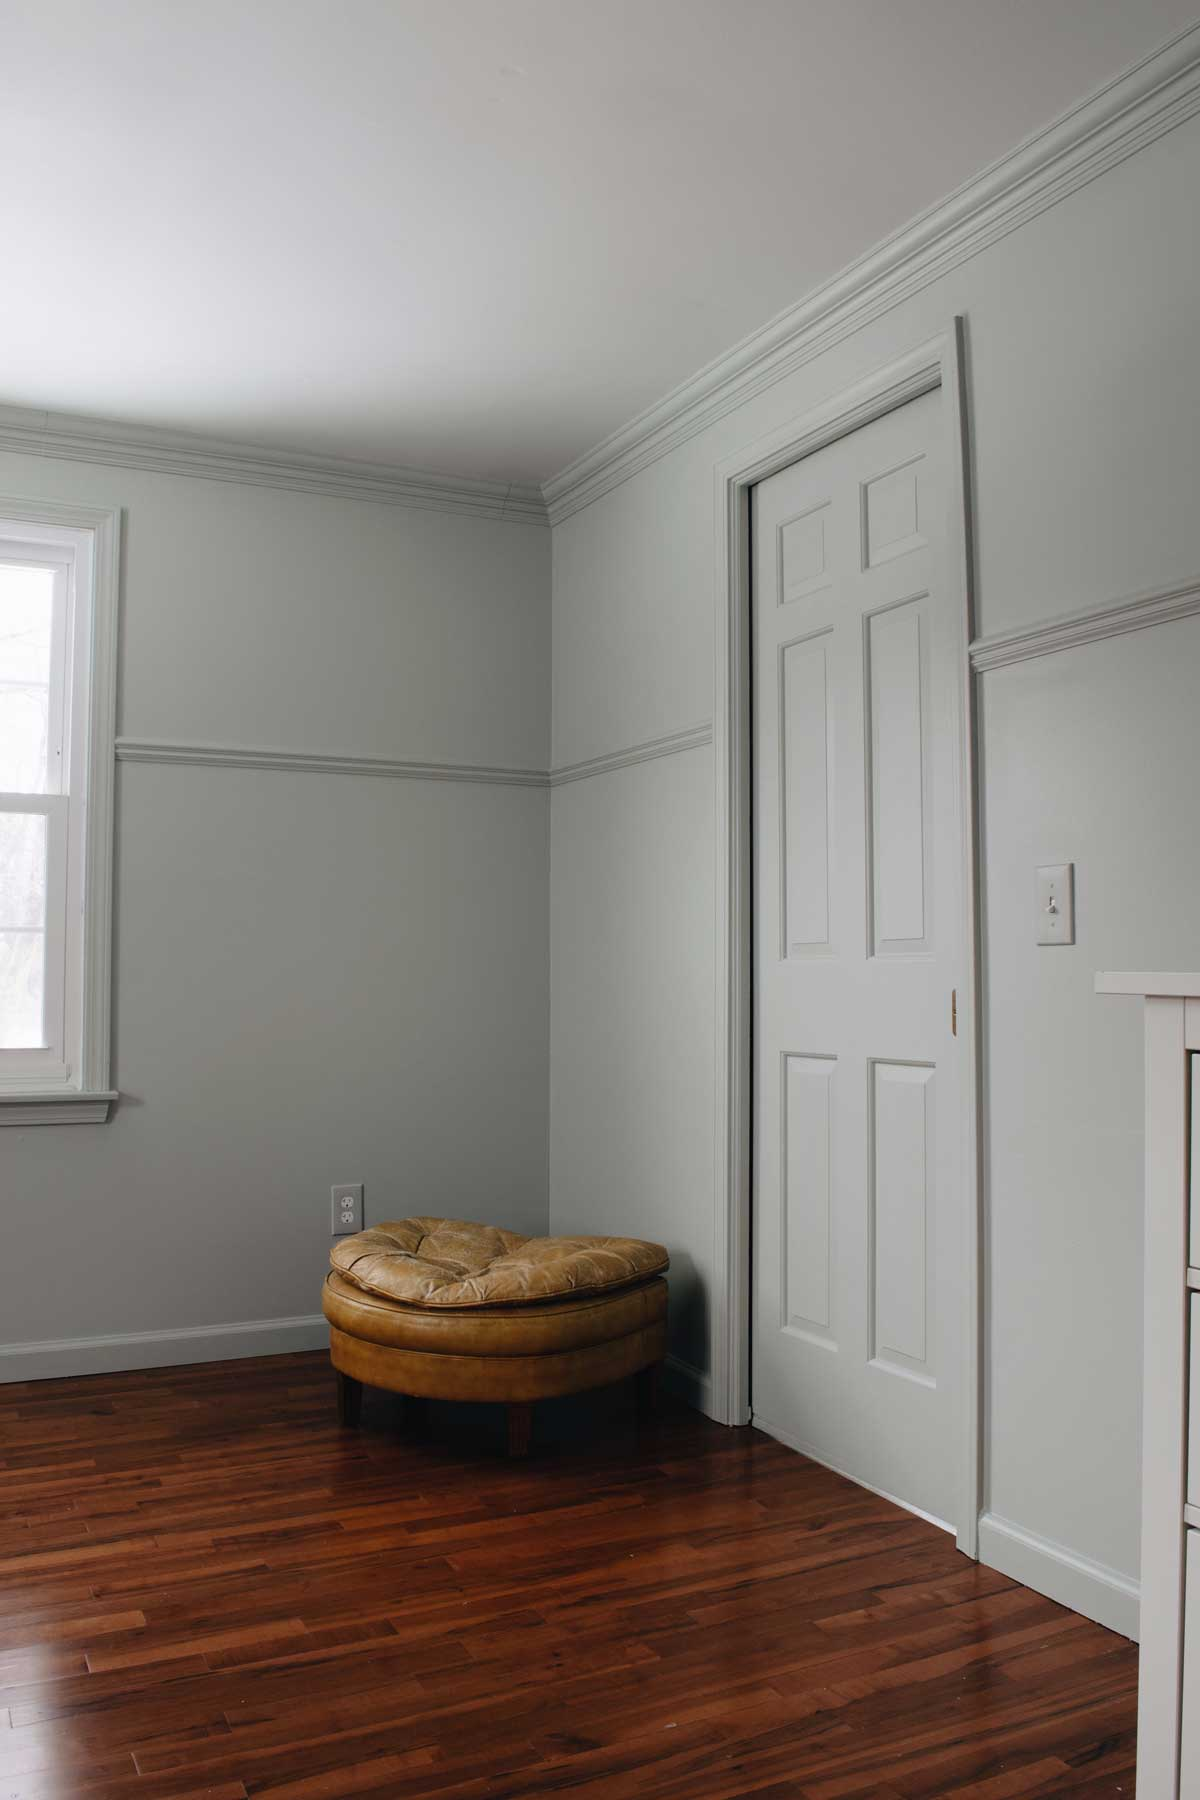 Painting Walls And Trim The Same Color Rachel Schultz